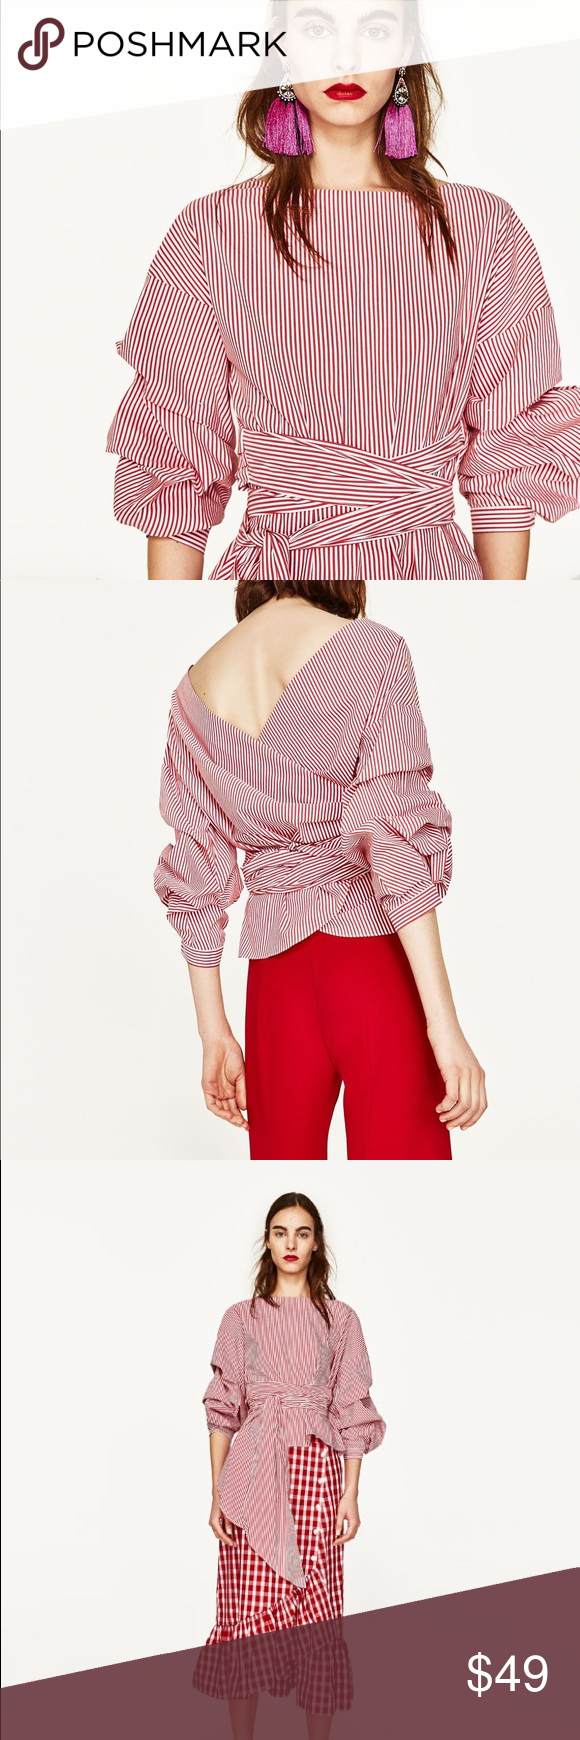 e459ac9f0a1 Zara red & white striped wrap blouse puff sleeve Zara red & white striped  wrap blouse with pleated puff sleeves. Beautiful statement top.